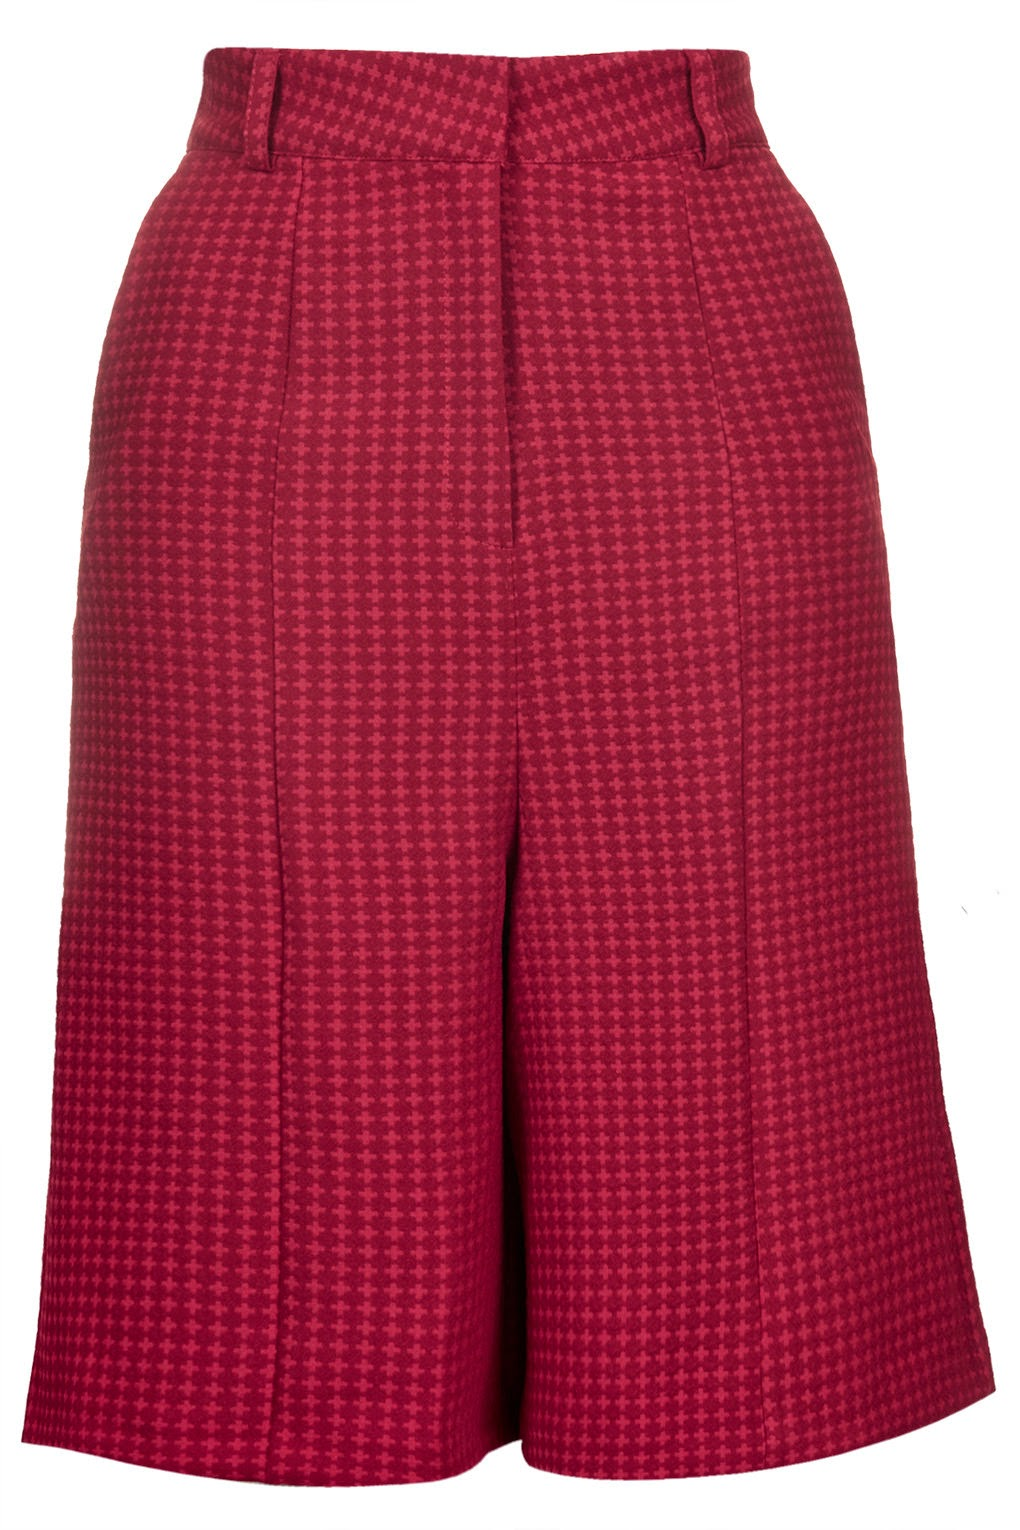 red check culottes